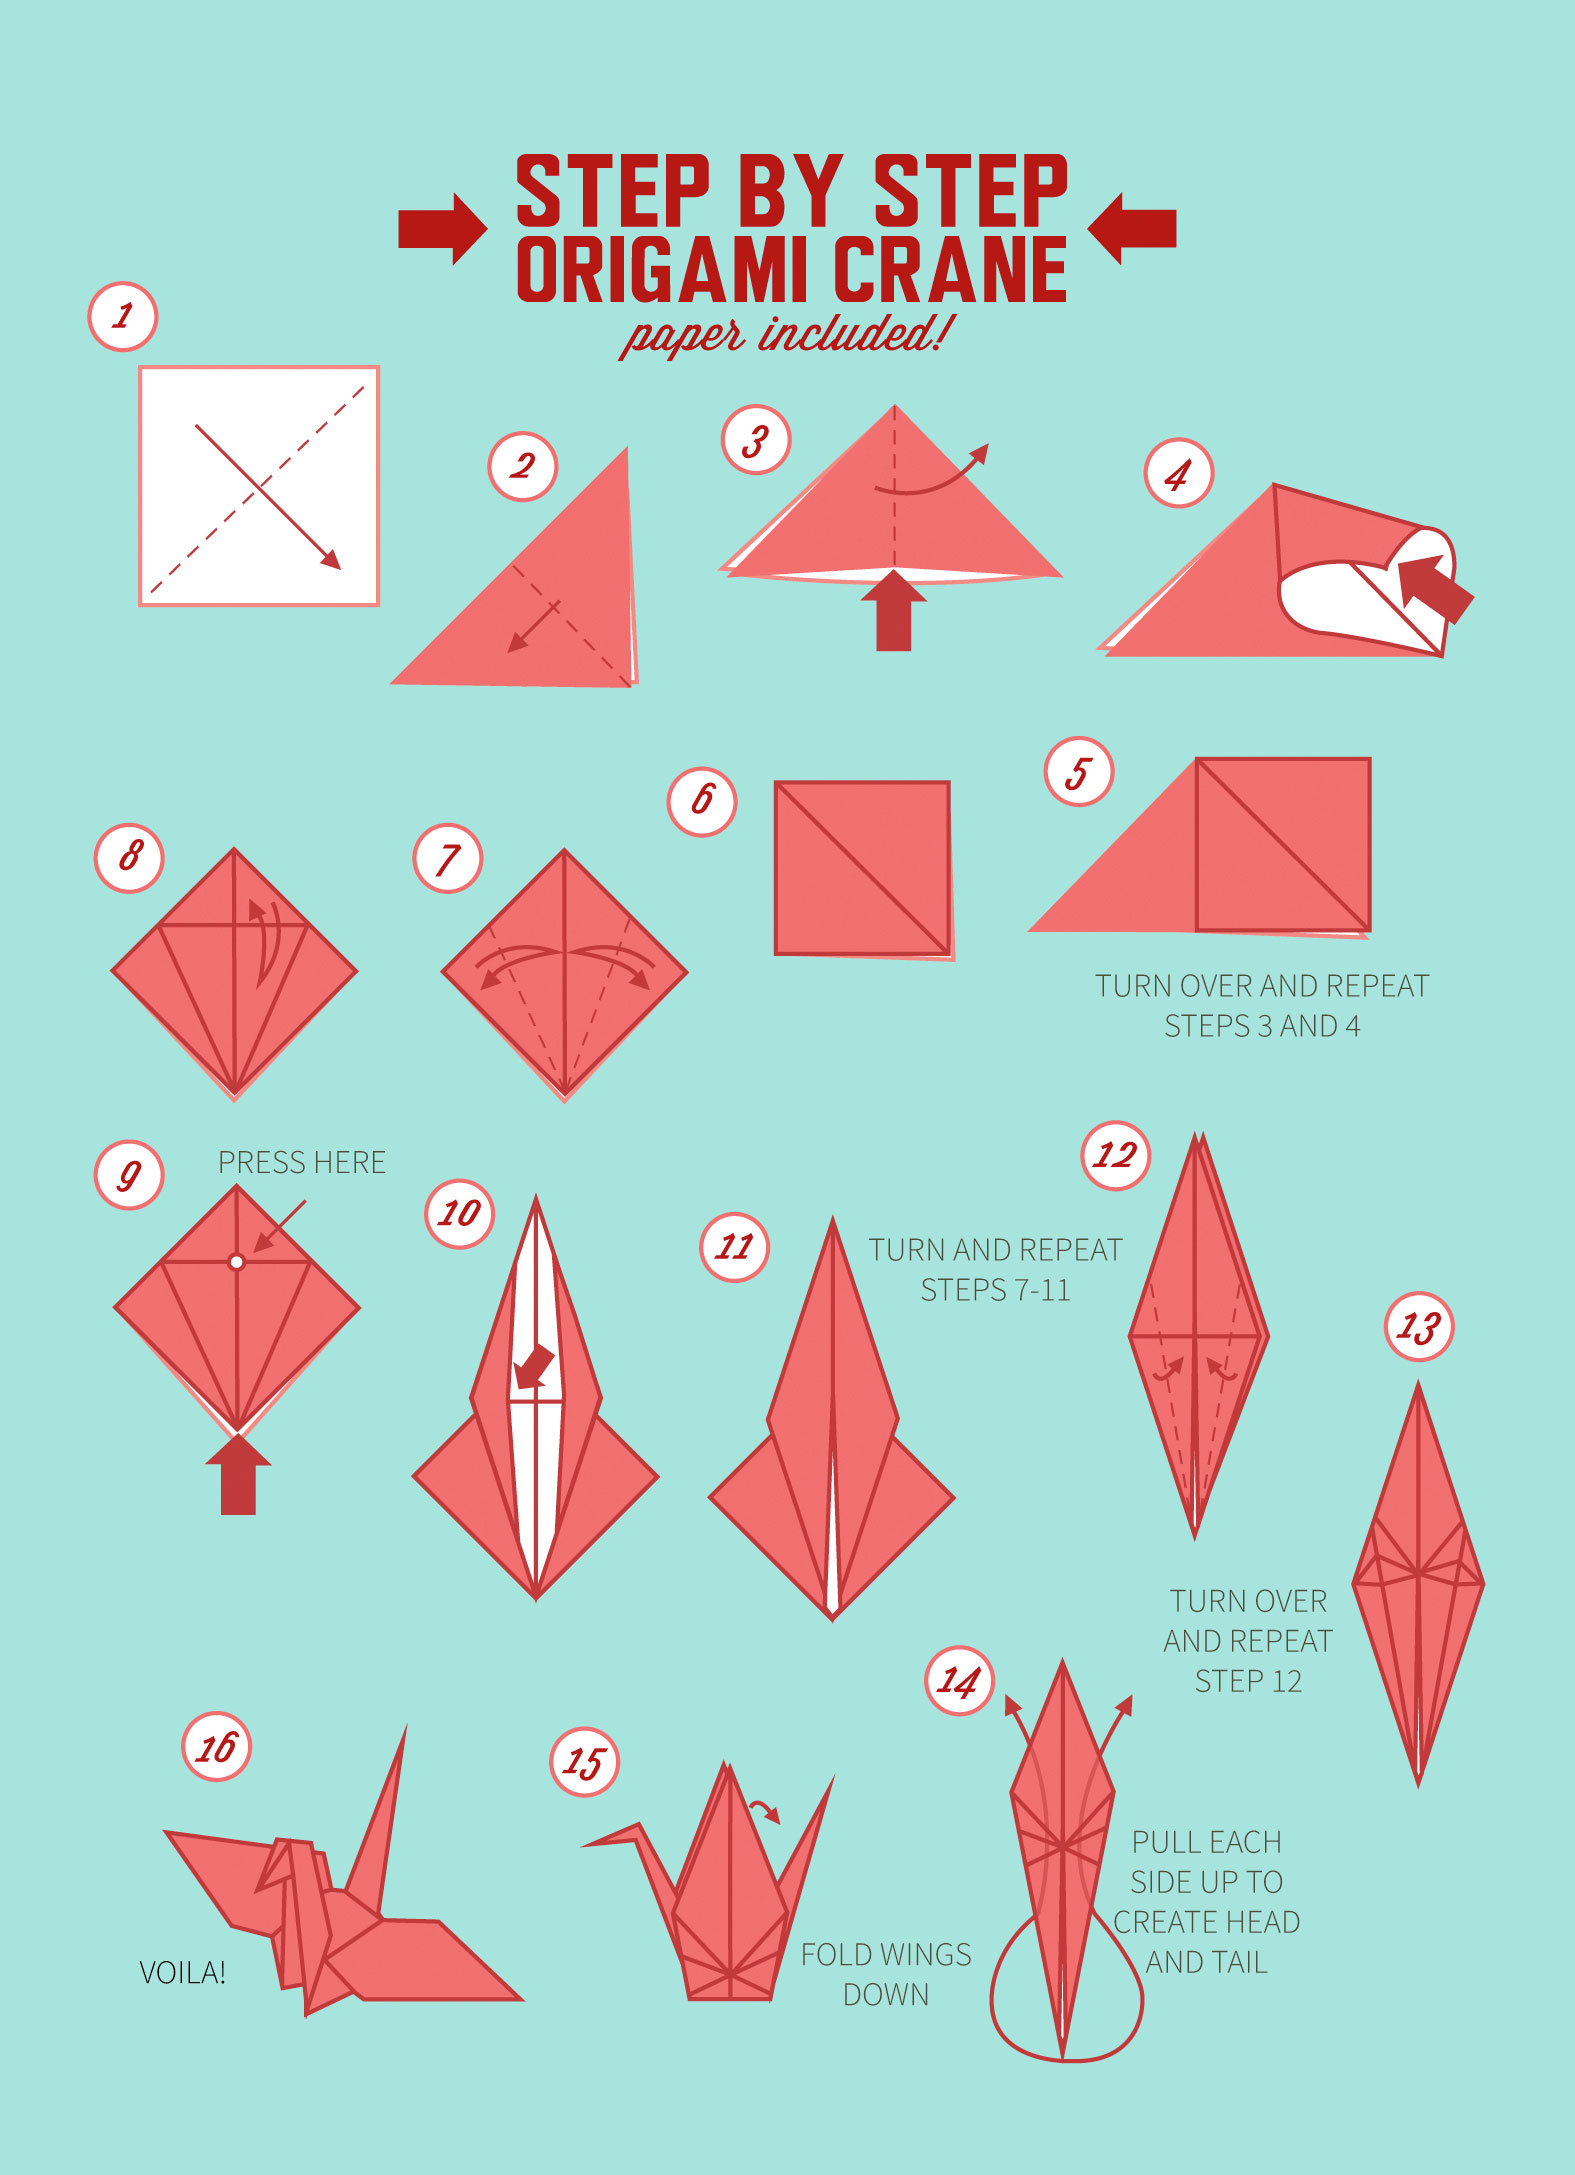 Steps to origami 1647863 114searchfo jewelry charms lockets amp braceletsorigami art britannicacomeasy origami masu box tutorial paper kawaiiorigami creations origamifuncoma collection jeuxipadfo Image collections